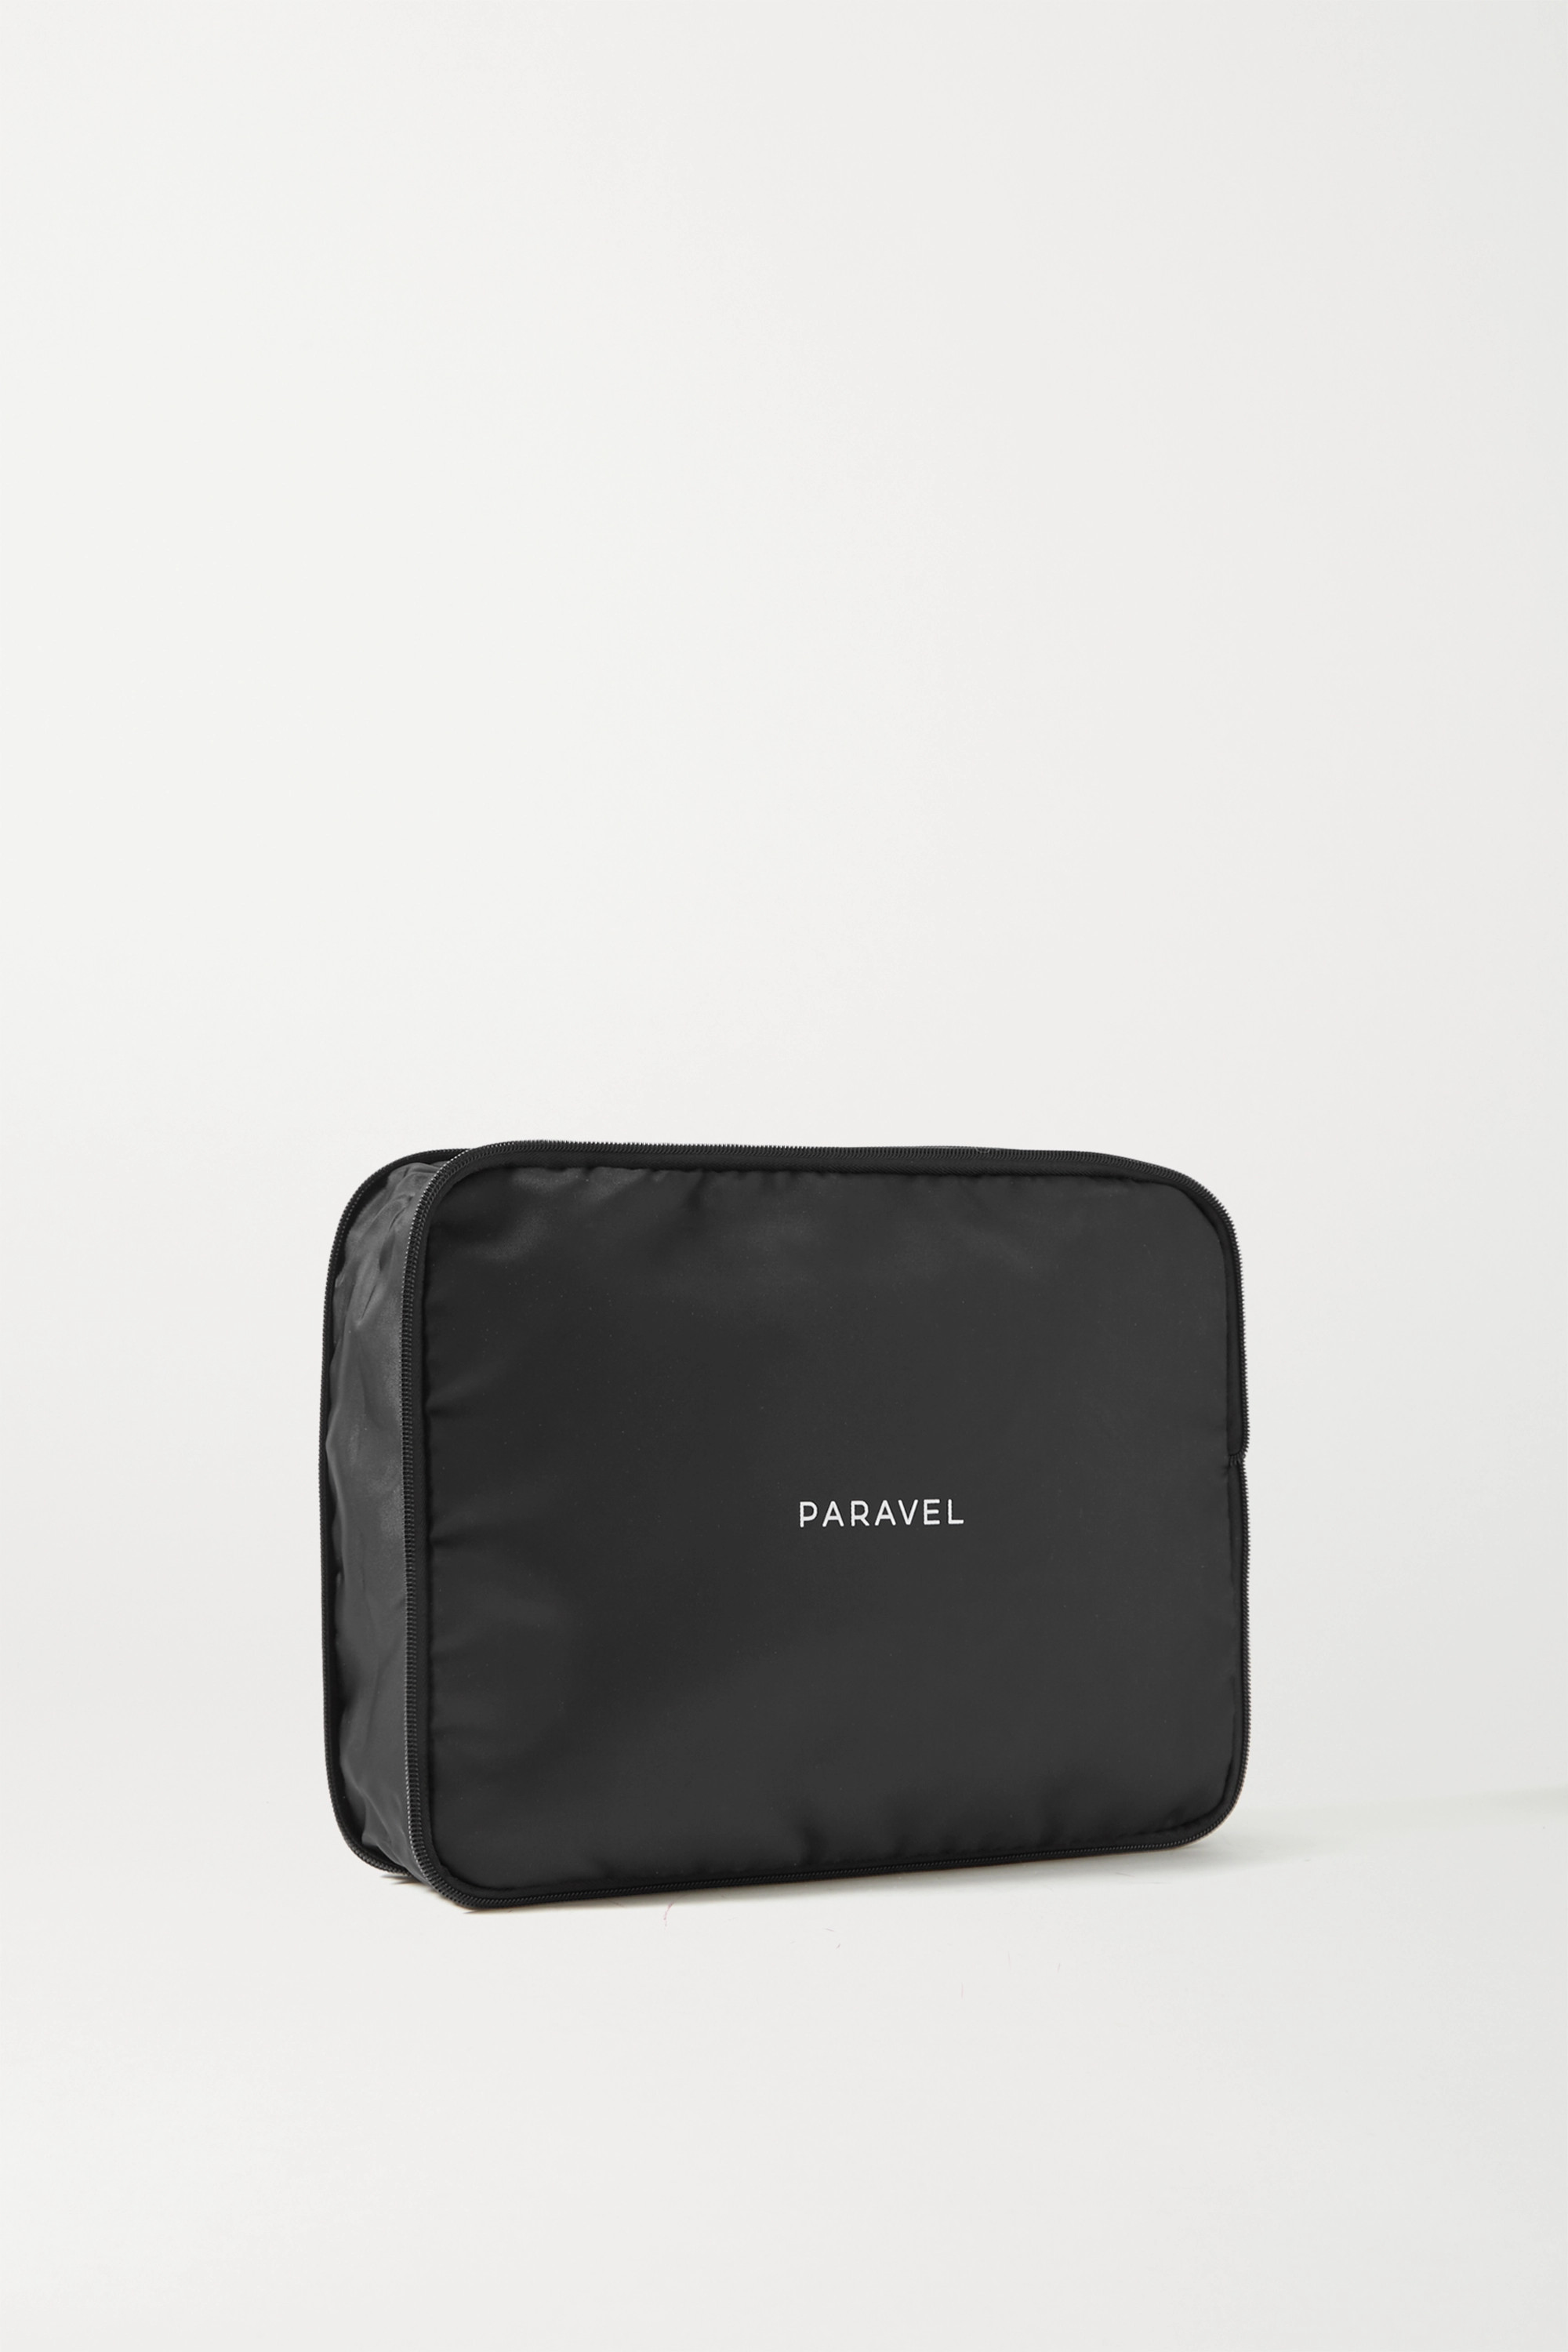 Paravel Set of two nylon and TPU packing cubes